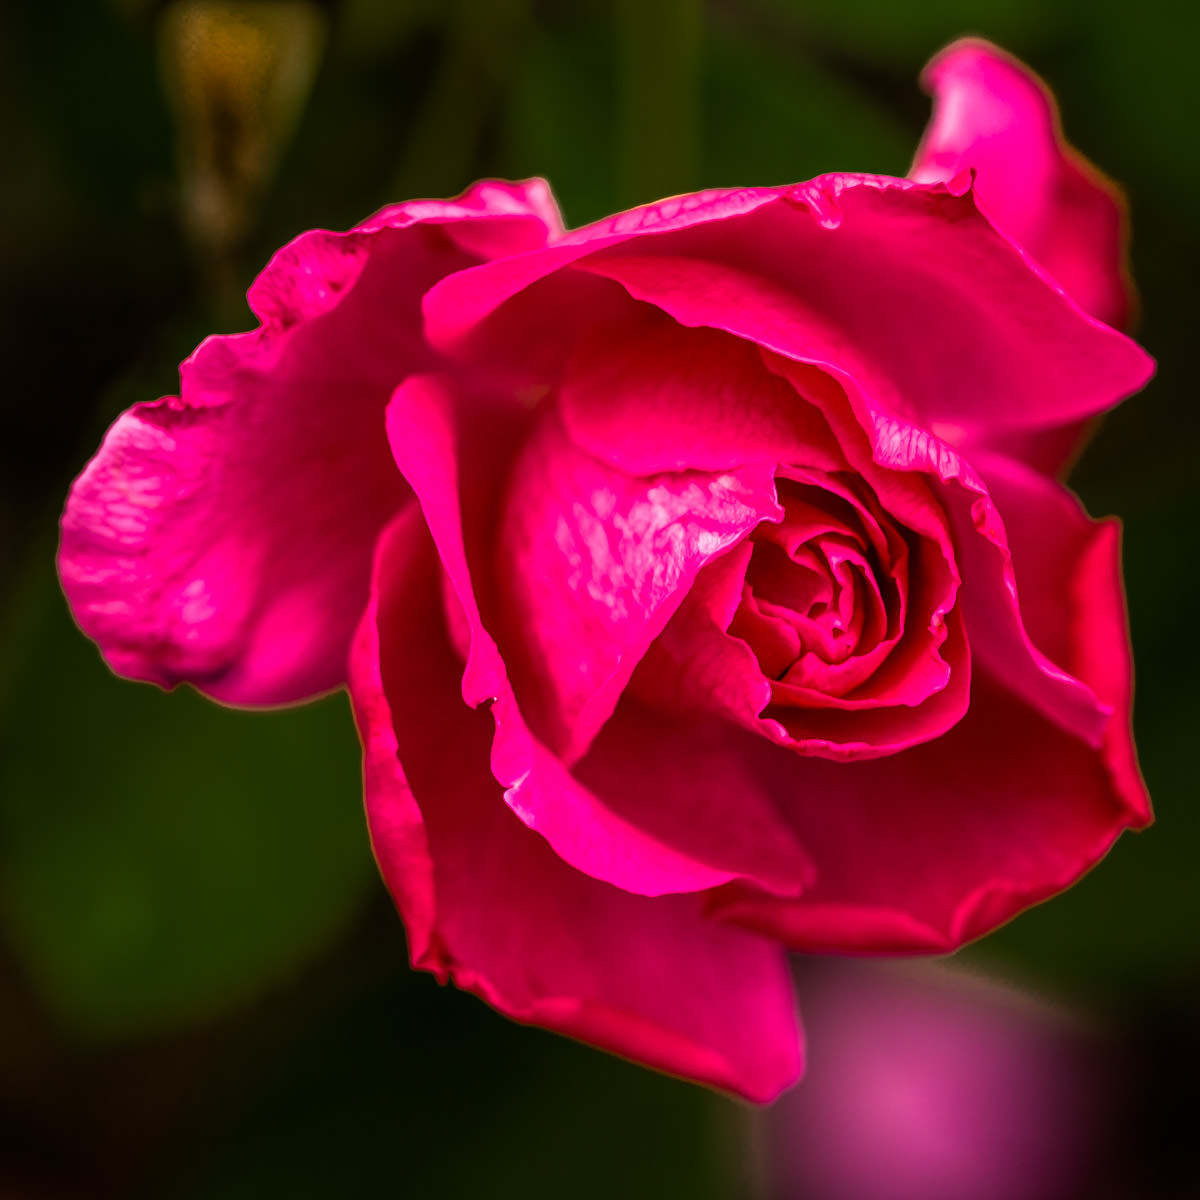 A rose spotted at Texas A&M University, College Station, Texas.